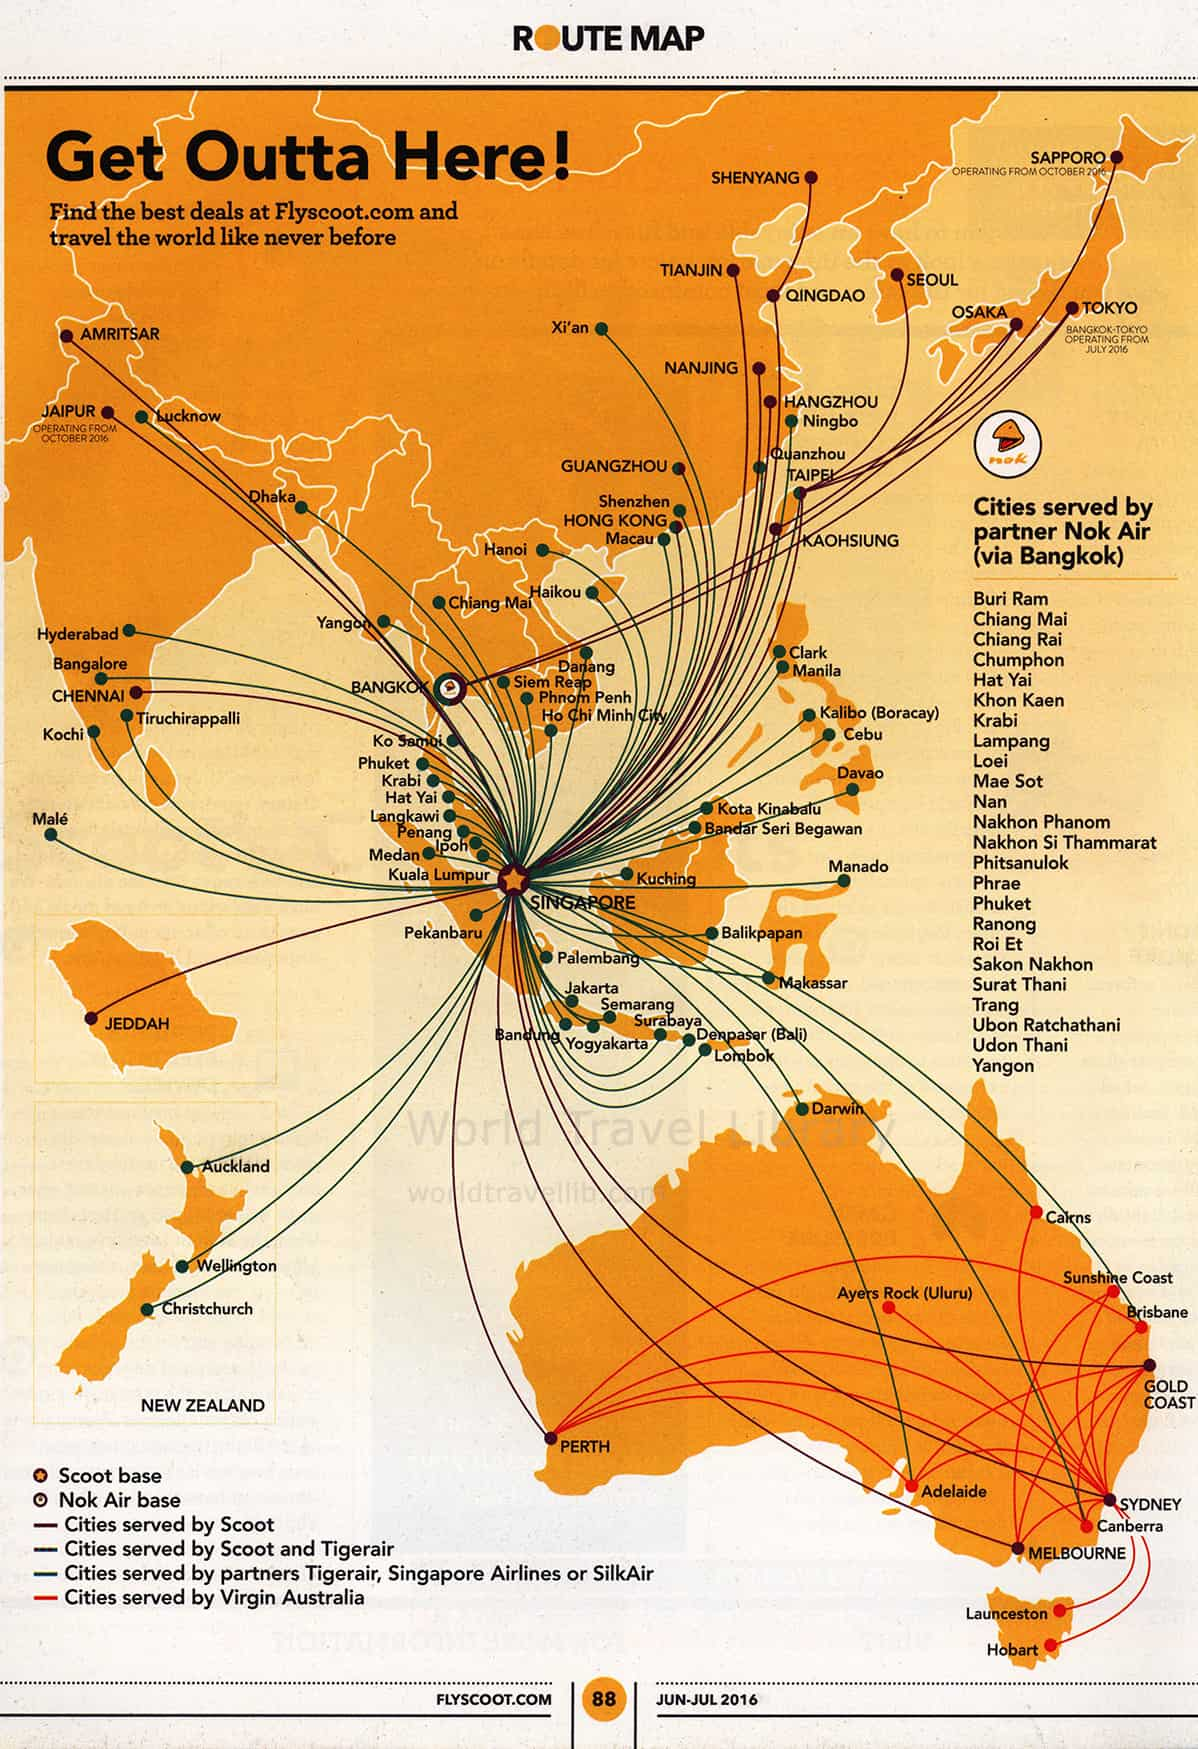 Singapore Airlines, Silkair, Scoot | World Travel Library